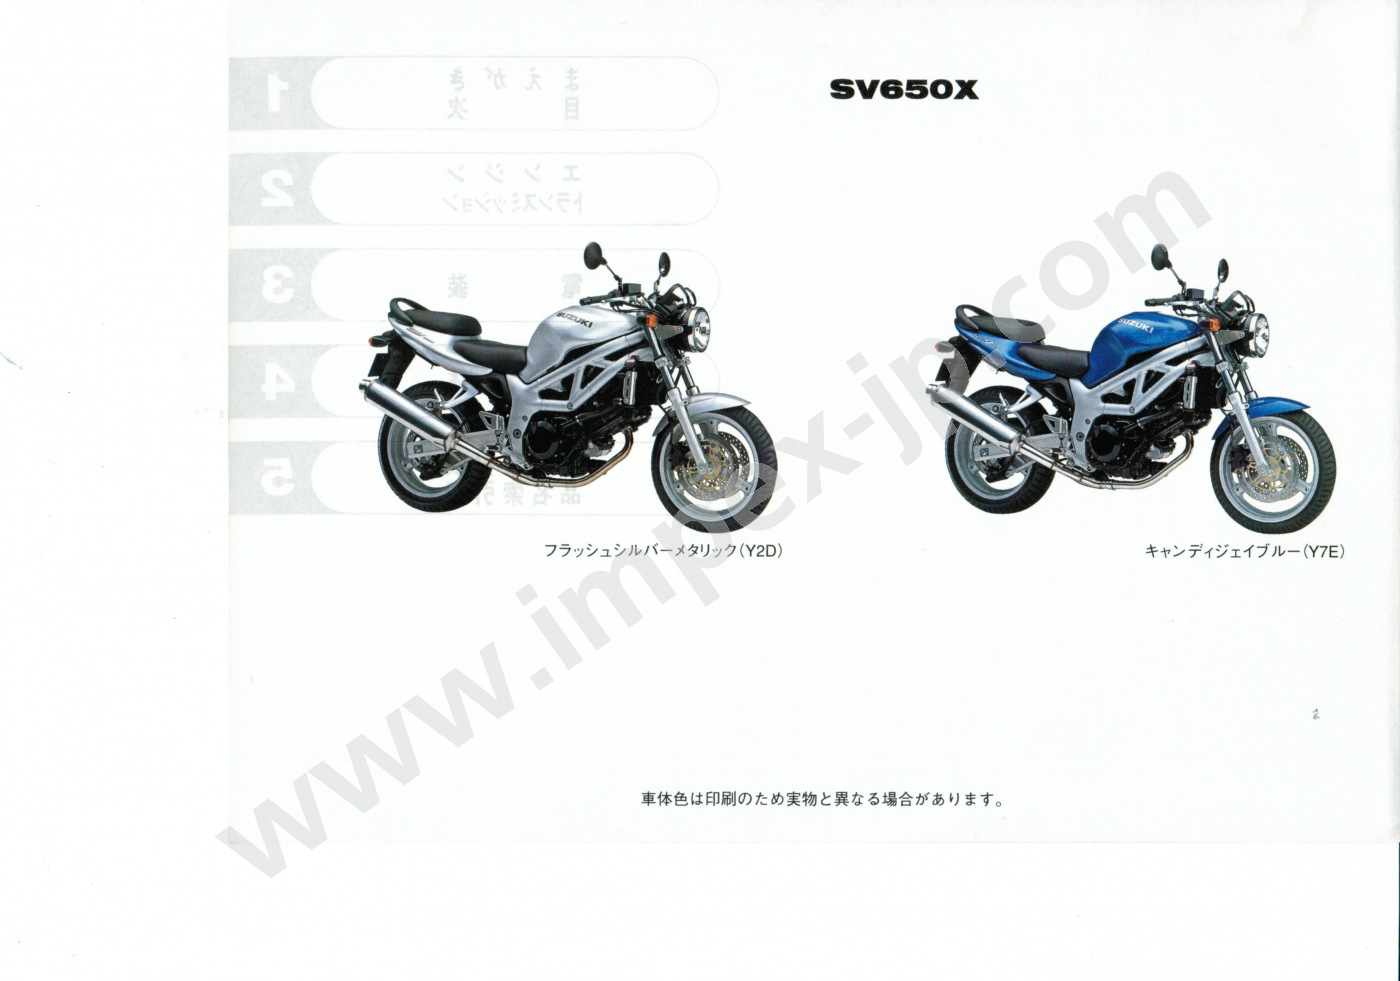 Marvelous Jp Motorcycle Parts And Accessories #2: Motorcycle Parts SUZUKI SV650